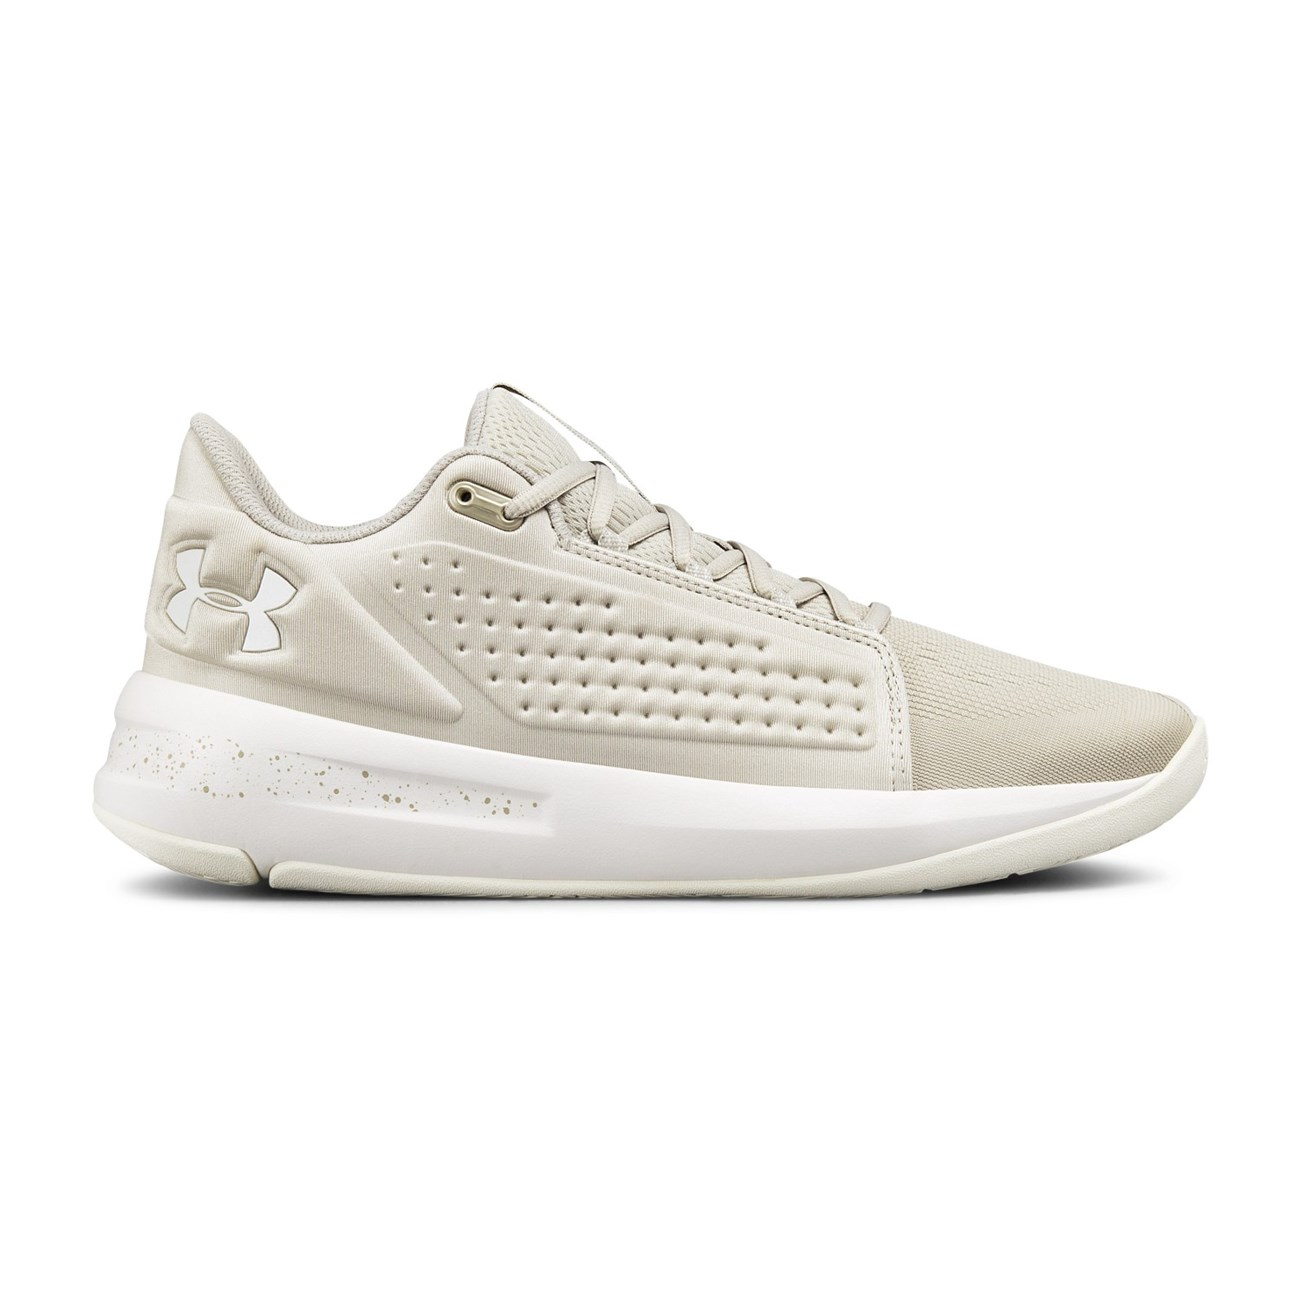 UNDER ARMOUR TORCH LOW   SALE  fb6a81ae0fd